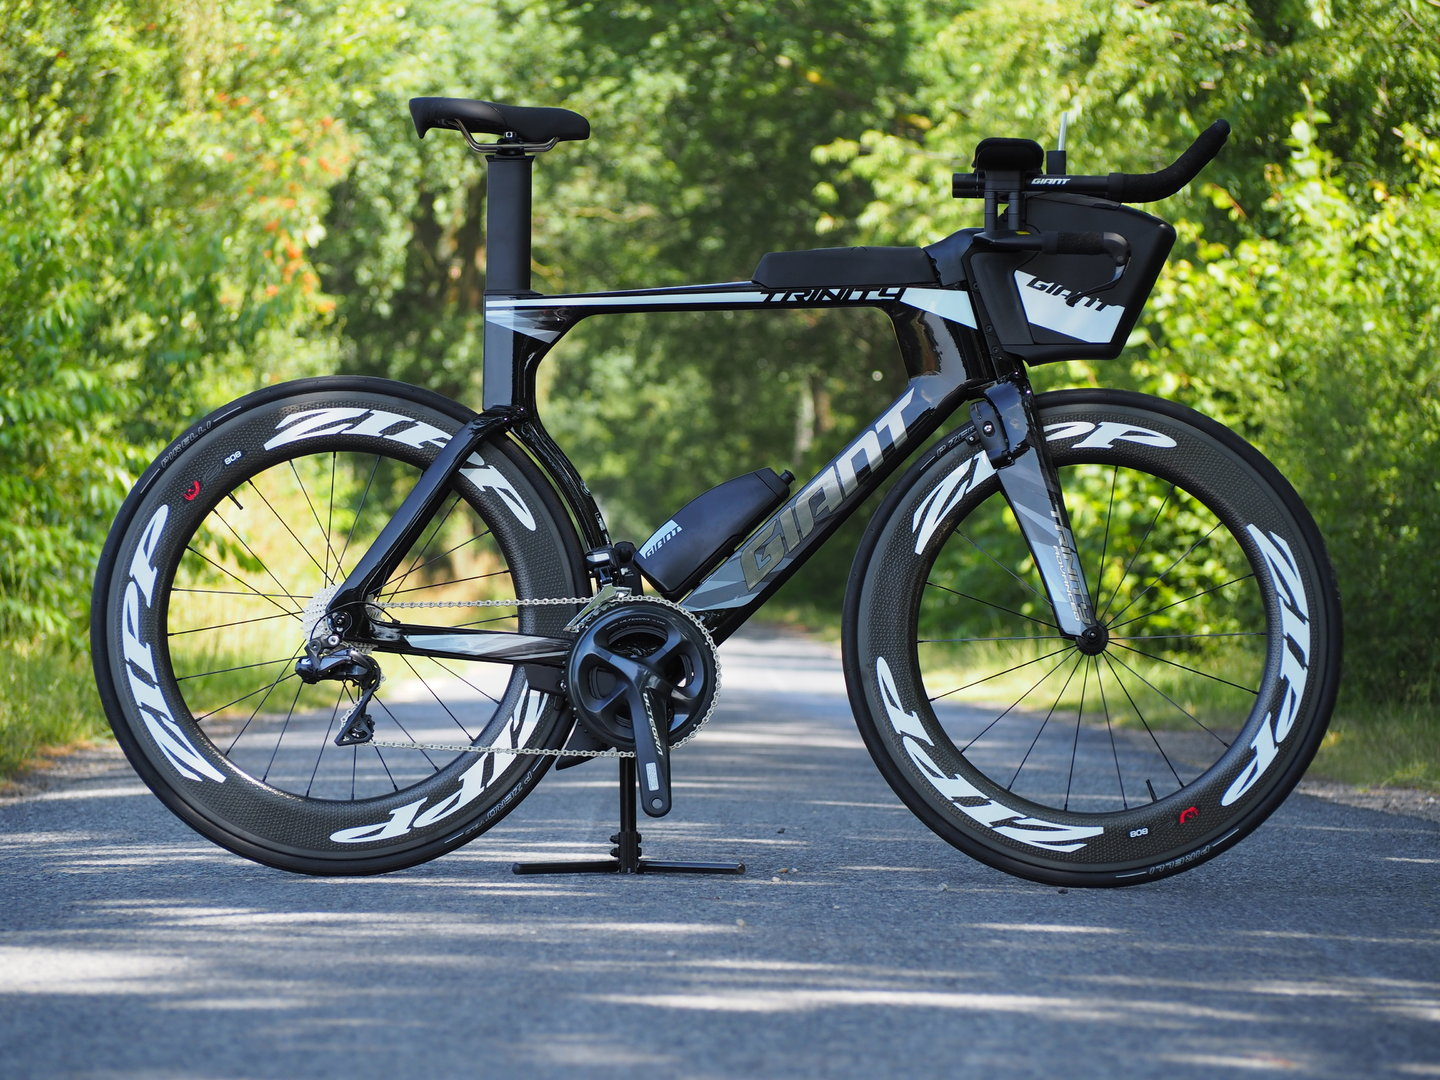 Giant Giant Trinity Advanced Pro 1, Modell 2021 | tri- and time trial bike